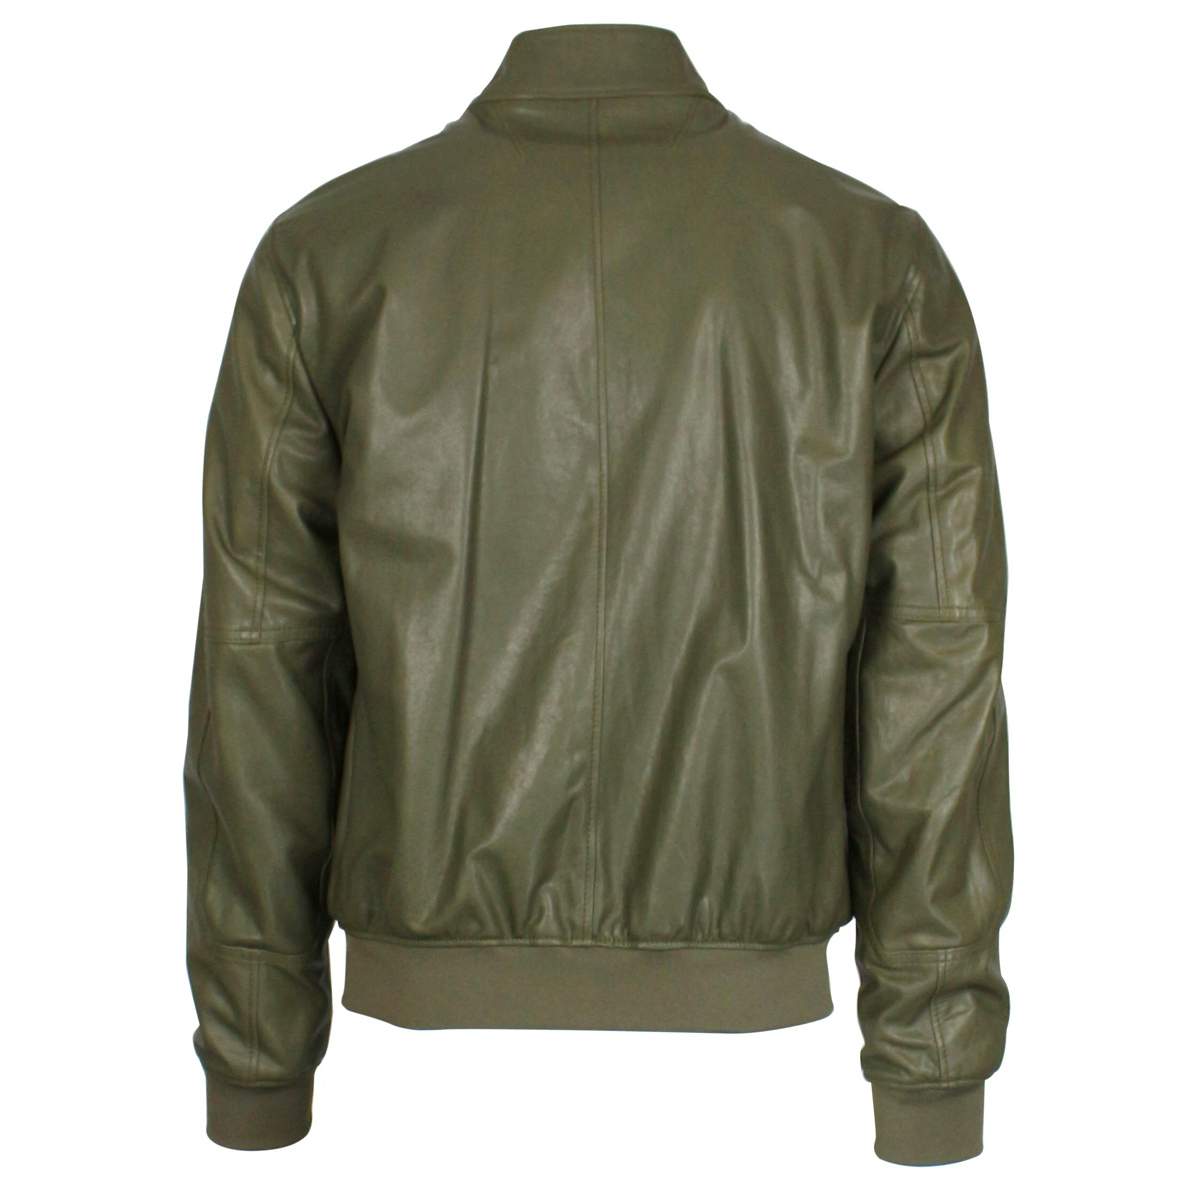 Full zip leather jacket Green Jeckerson